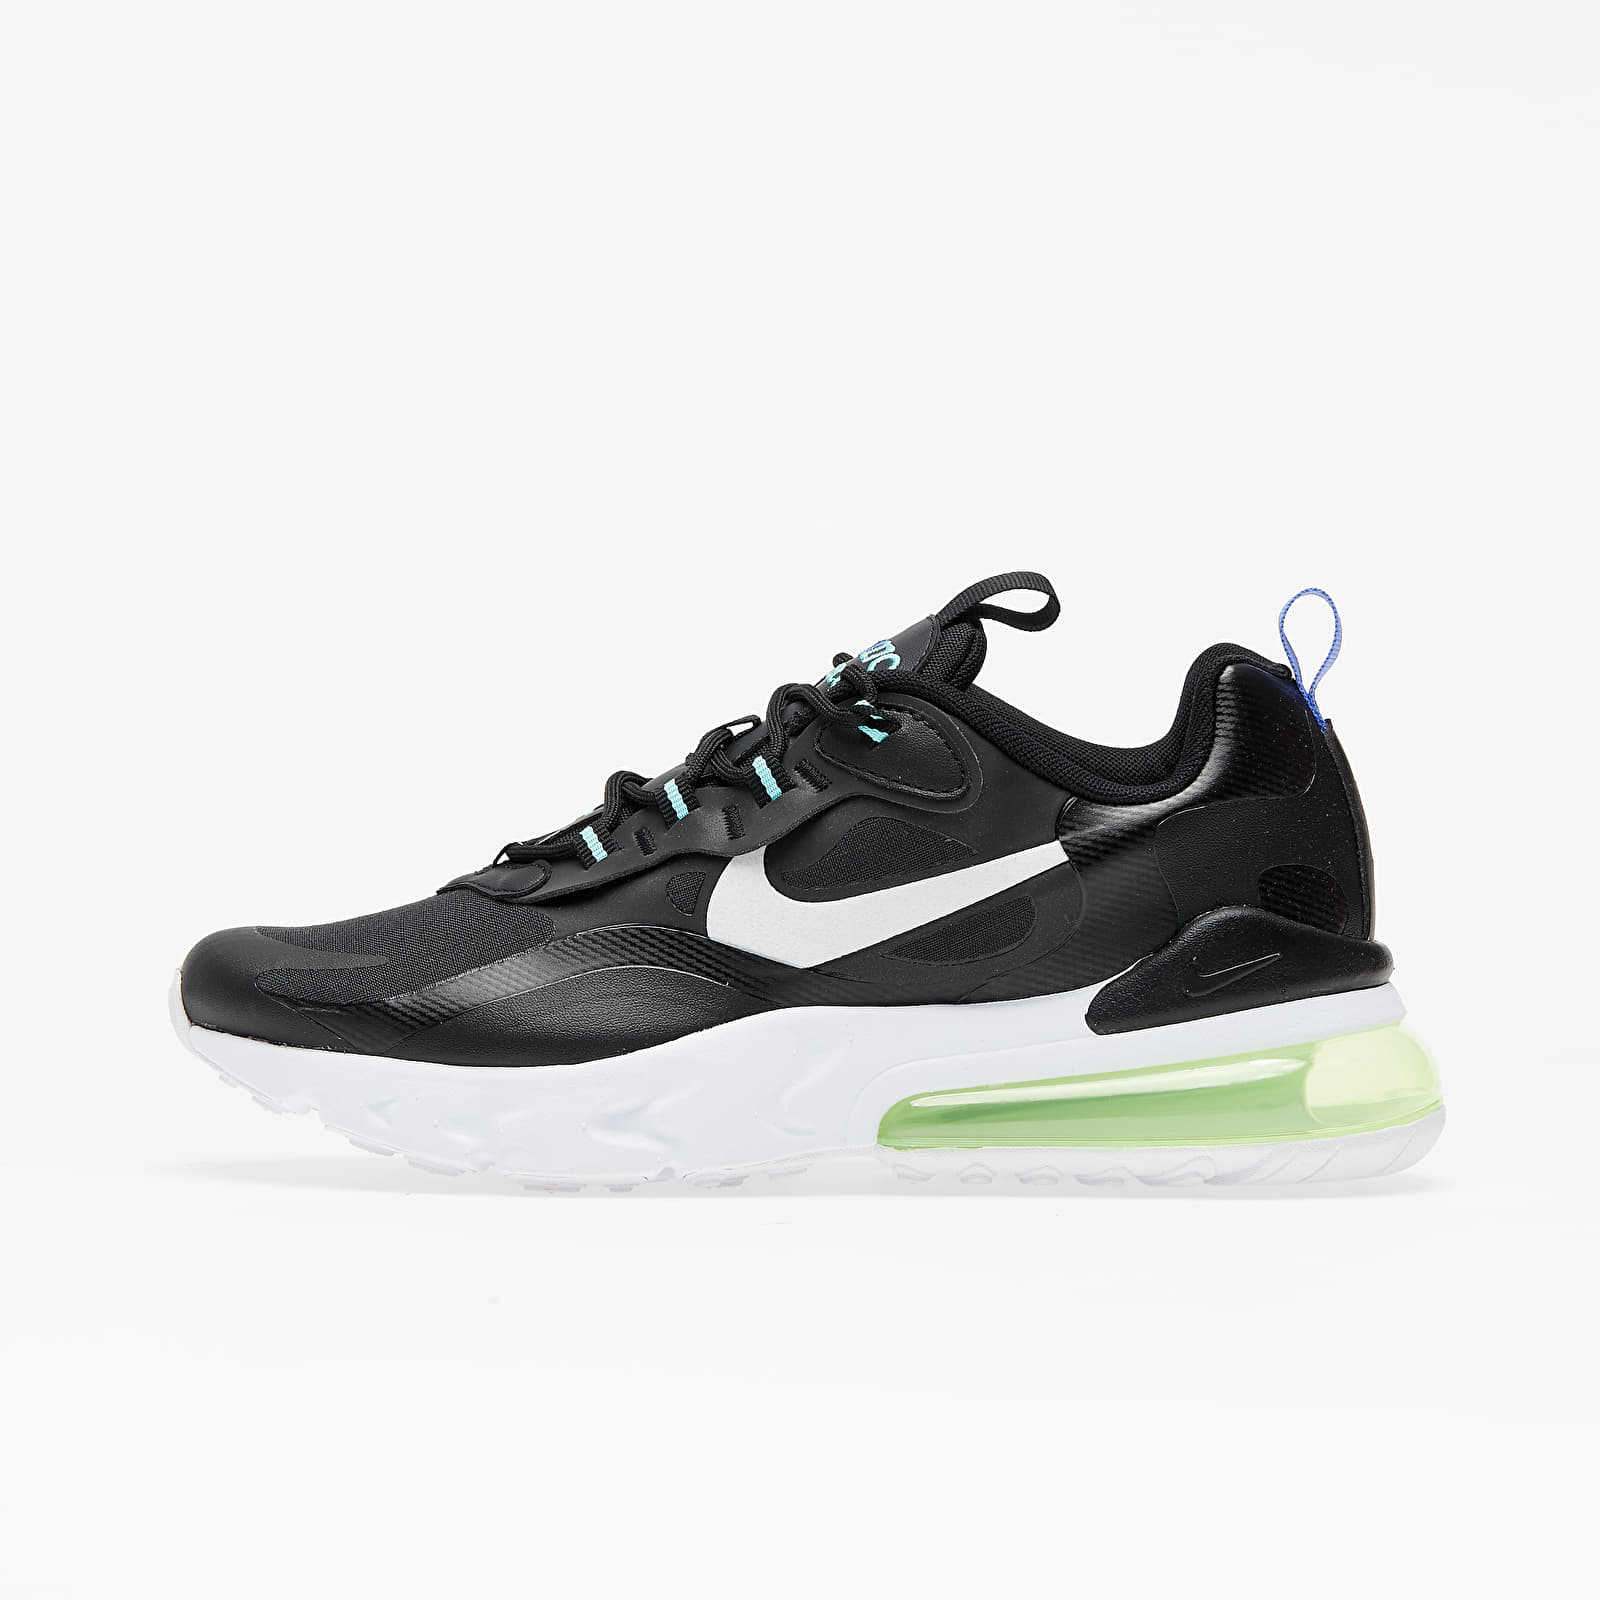 Scarpe e sneaker da bambino Nike Air Max 270 React GS Black/ White-Laser Orange-Aurora Green